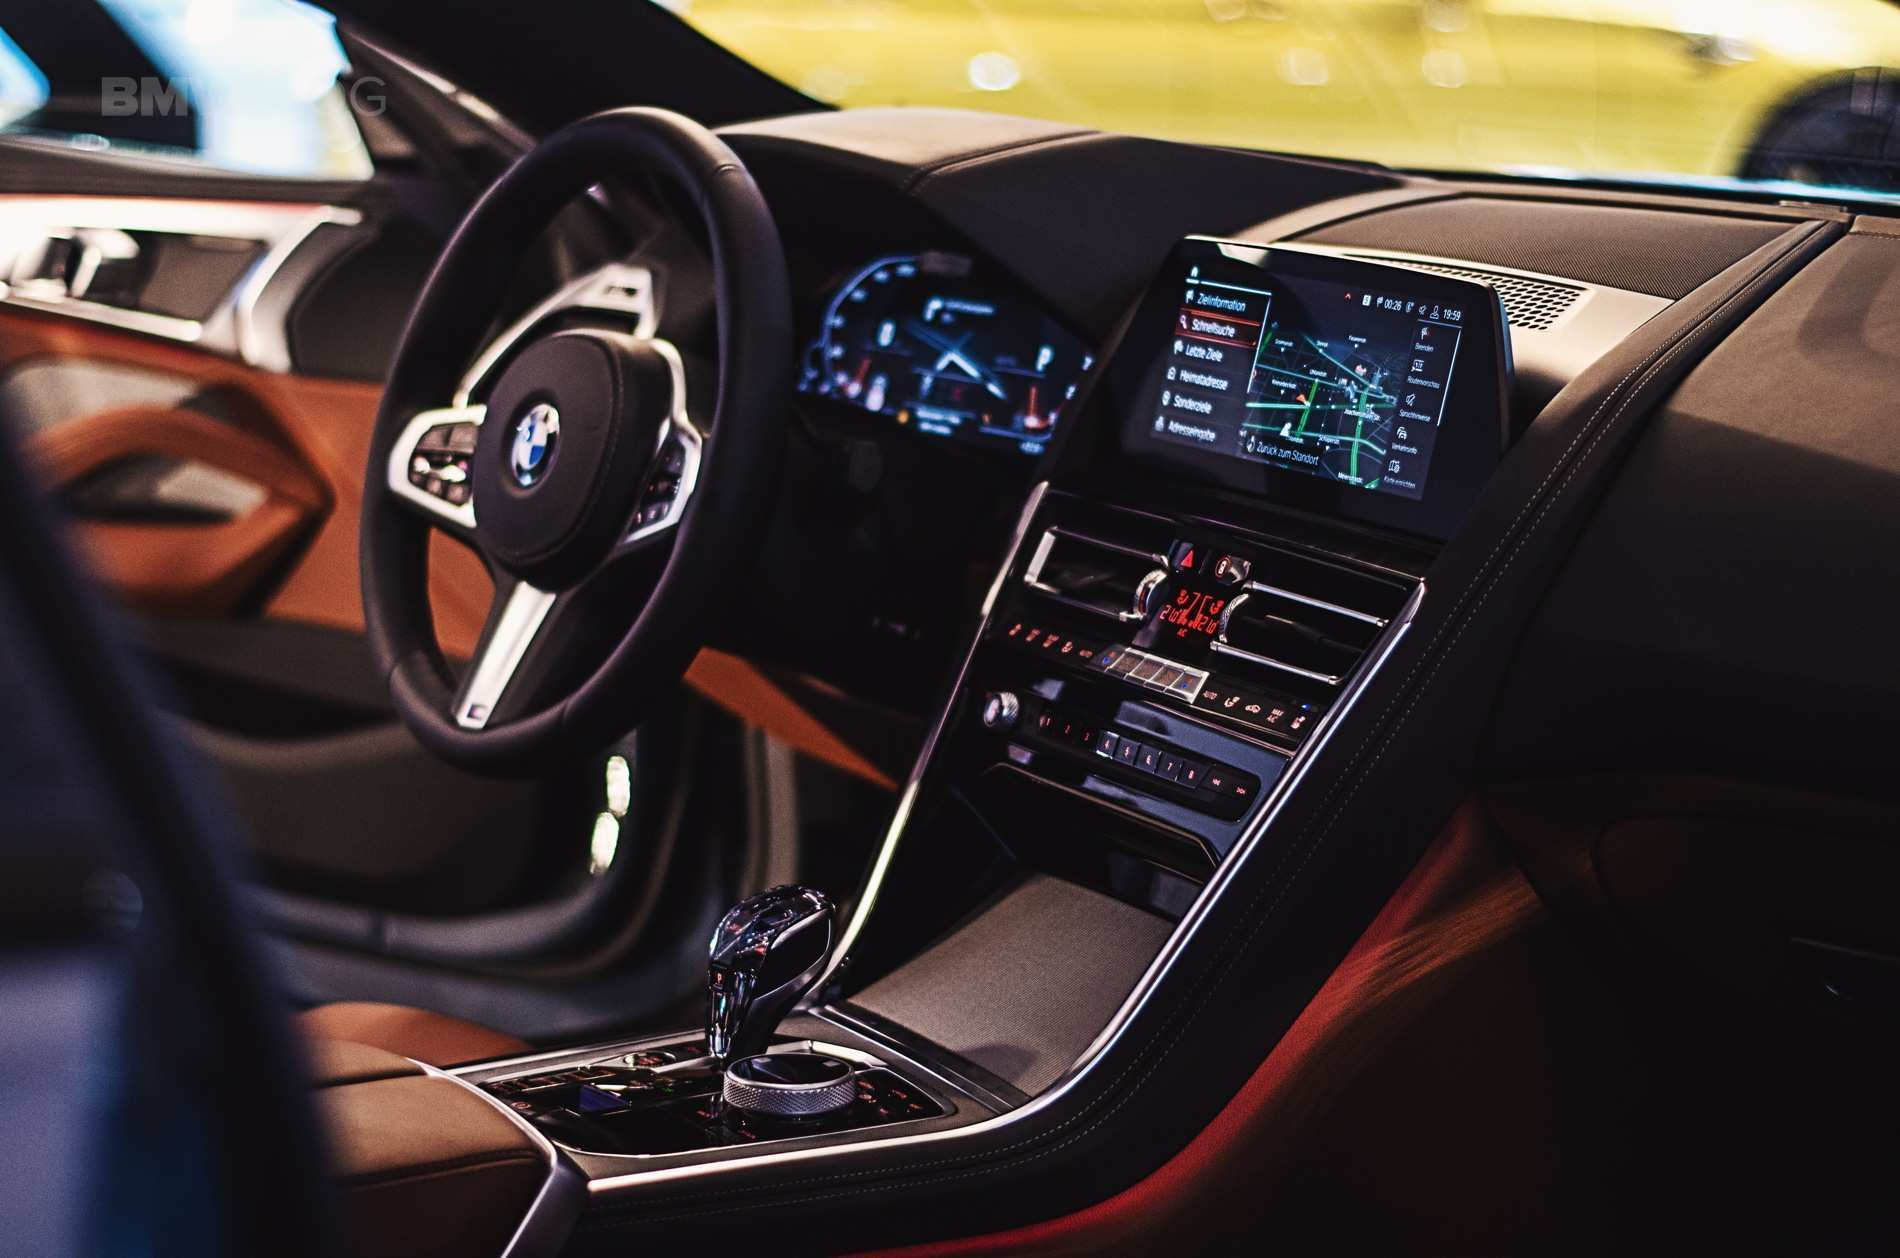 48 Concept of The 2019 Bmw Heads Up Display Interior New Review with The 2019 Bmw Heads Up Display Interior